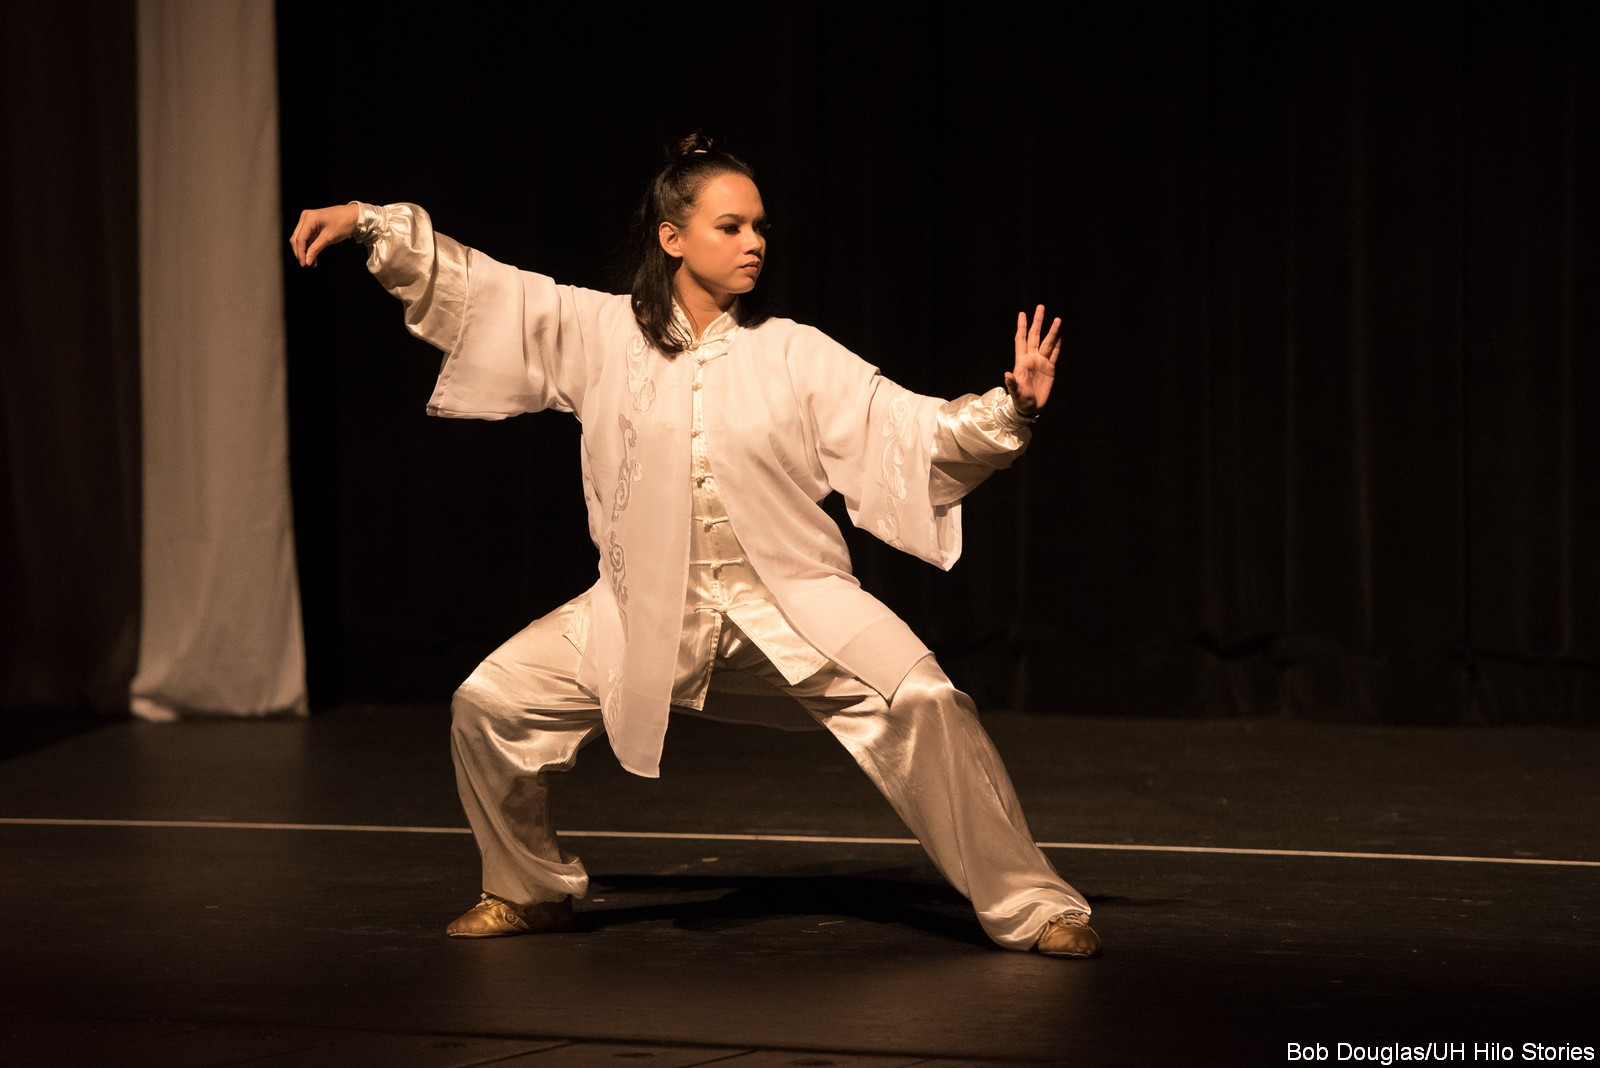 Dancing in off white costume, tai chi poses.